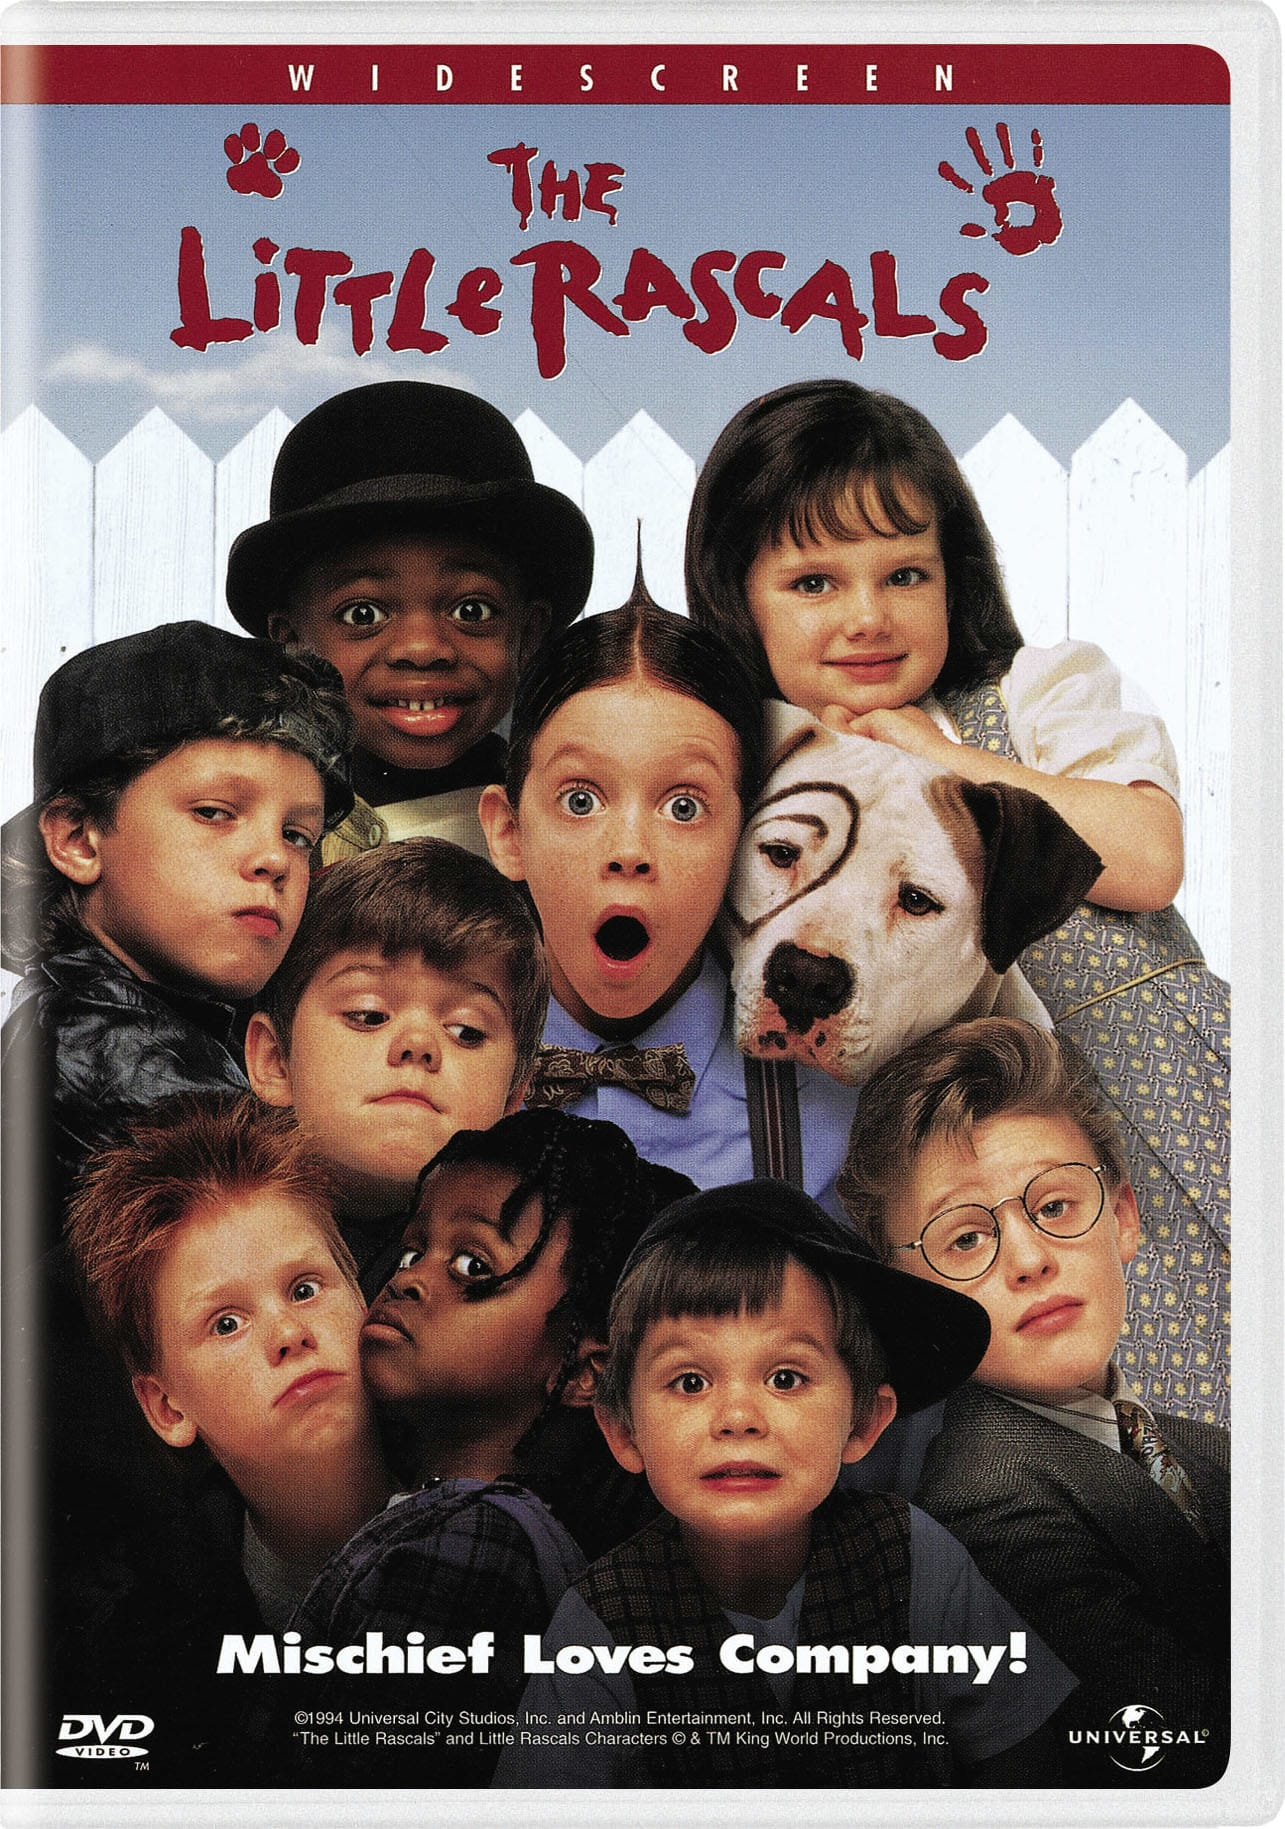 The Little Rascals (Widescreen) [DVD]